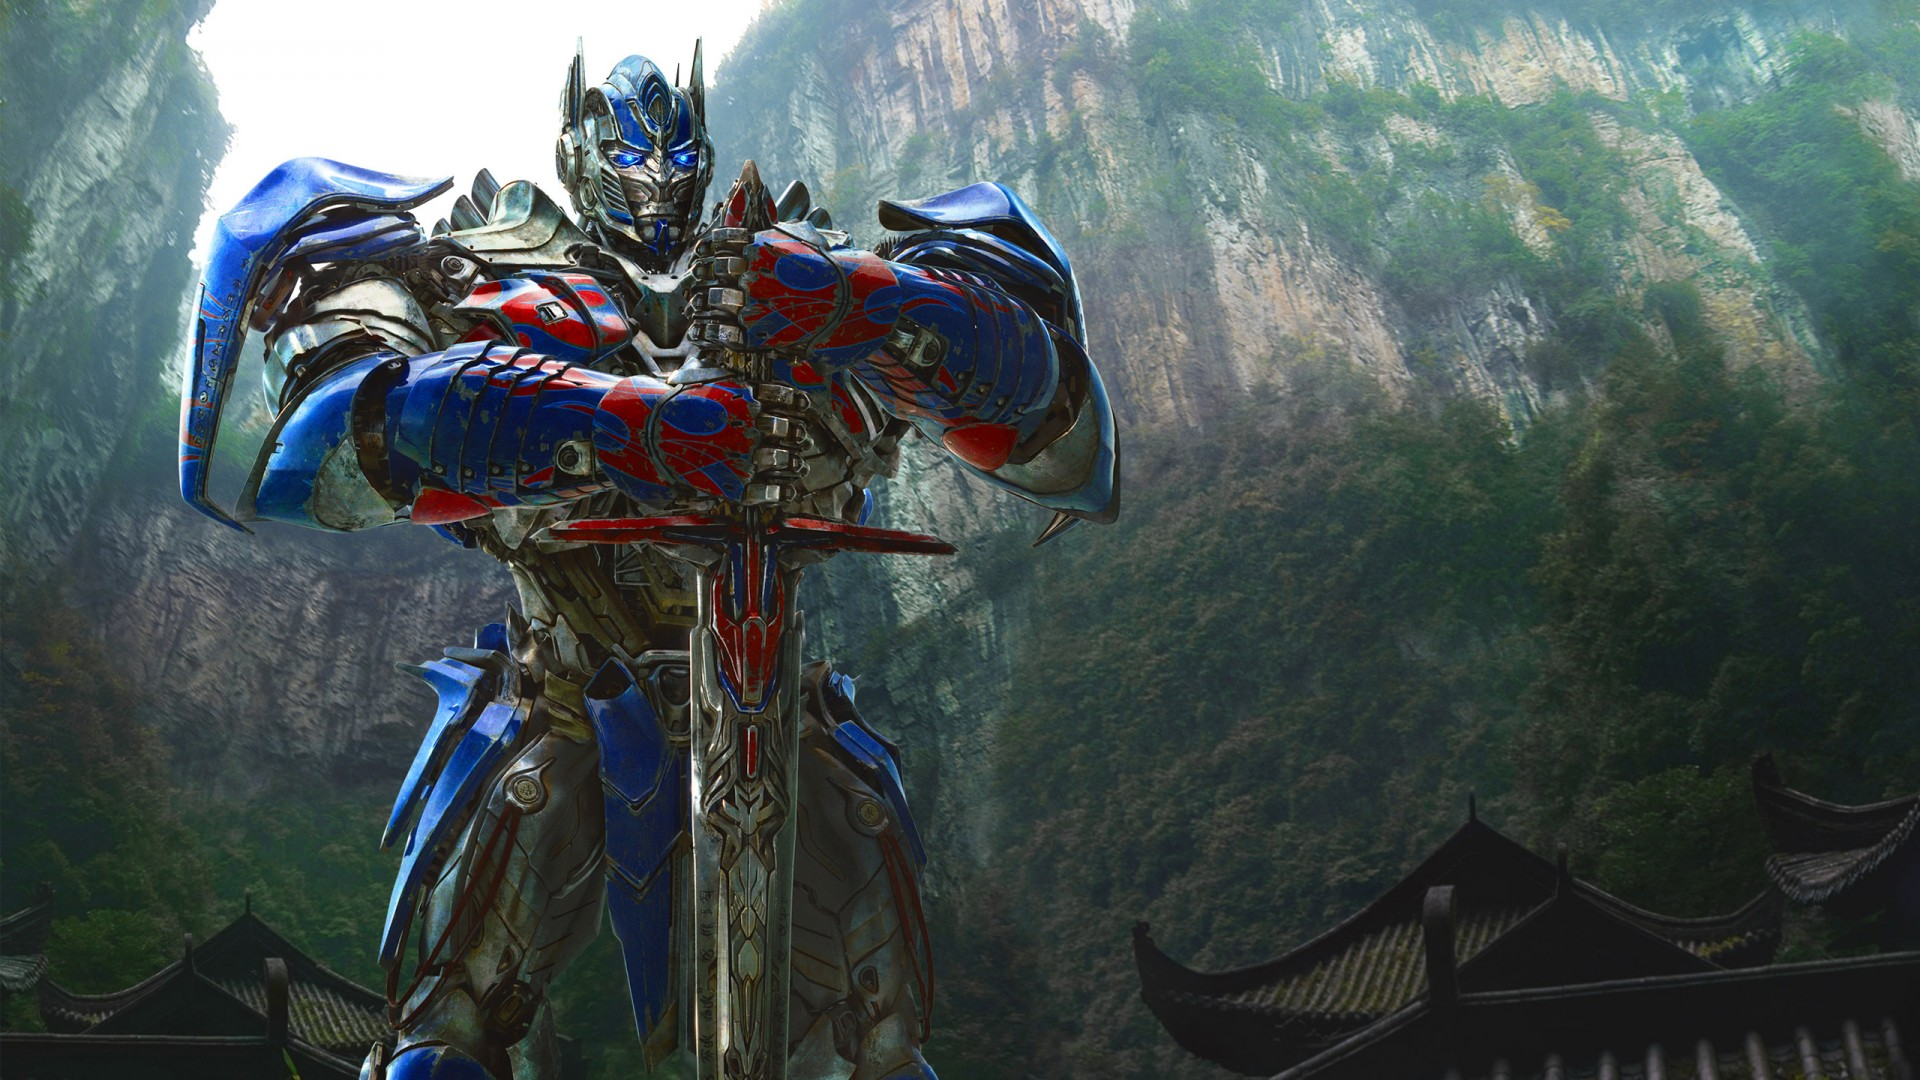 Screenbeauty Optimus Prime Transformers Movies